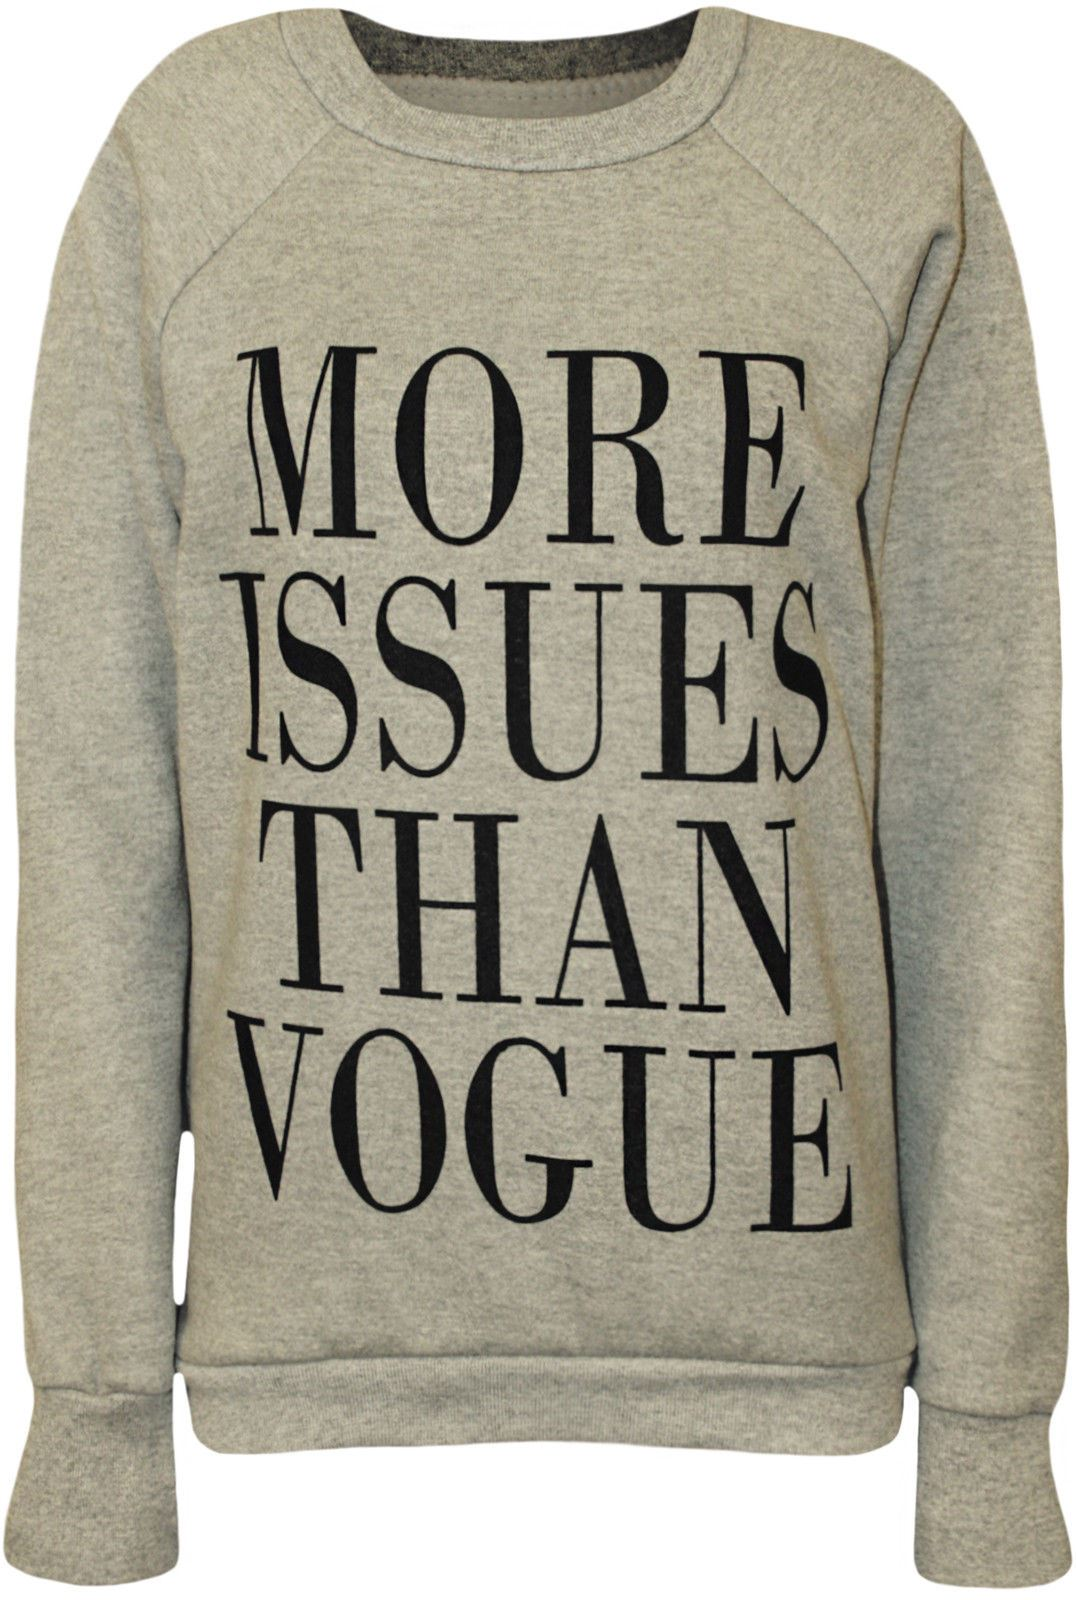 Womens-Ladies-More-Issues-Than-Vogue-Print-Jumper-Pullover-Sweatshirt-Top